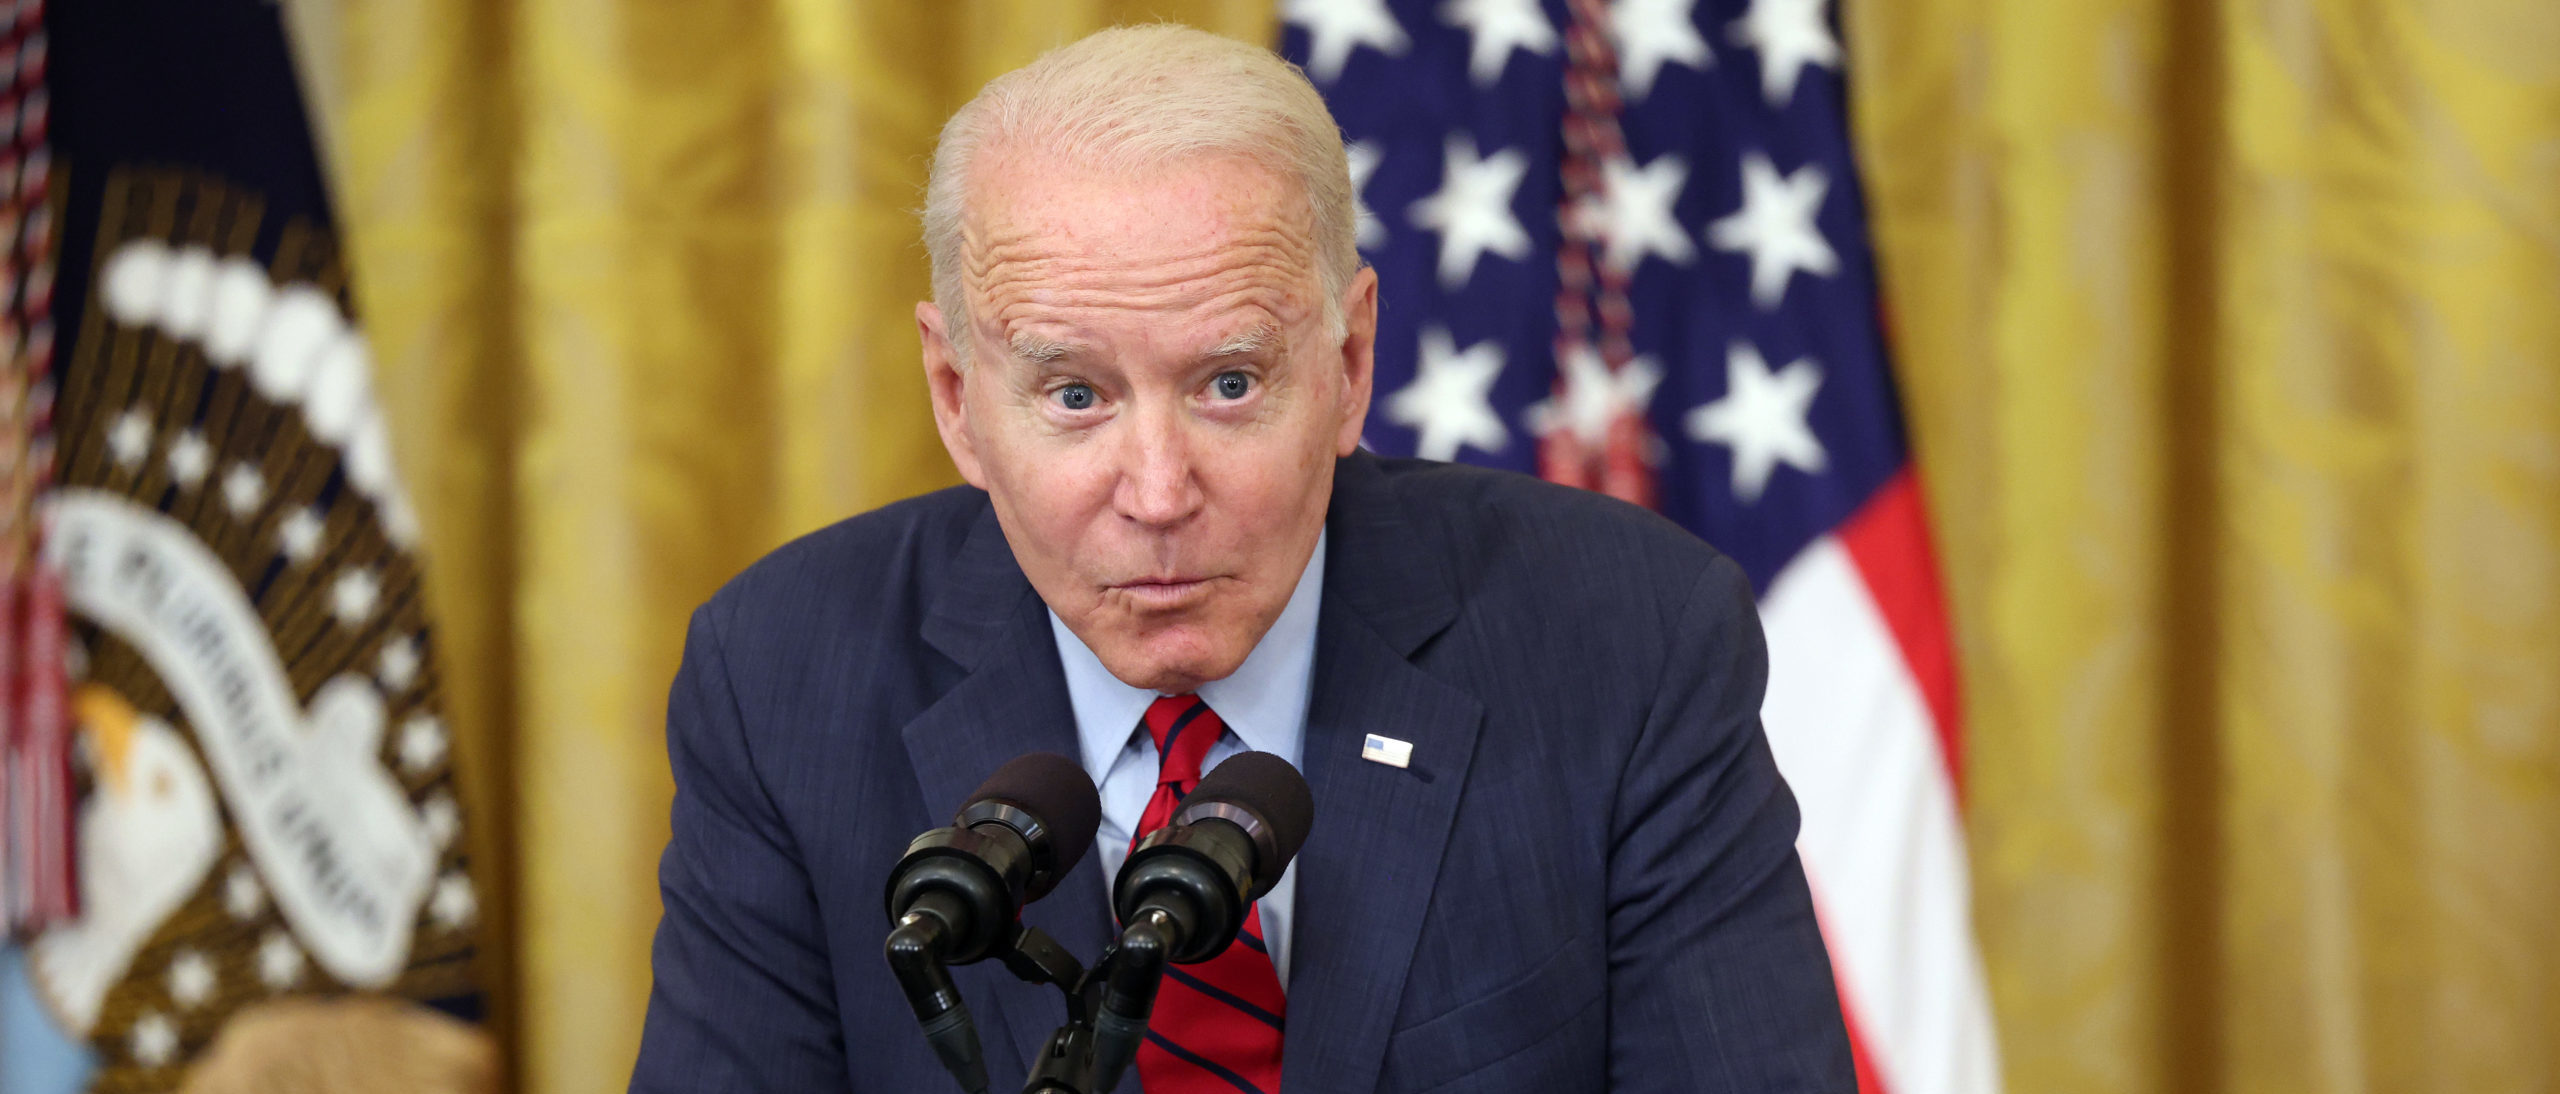 WASHINGTON, DC - JUNE 24: U.S. President Joe Biden delivers remarks on the Senate's bipartisan infrastructure deal at the White House on June 24, 2021 in Washington, DC. (Photo by Kevin Dietsch/Getty Images)